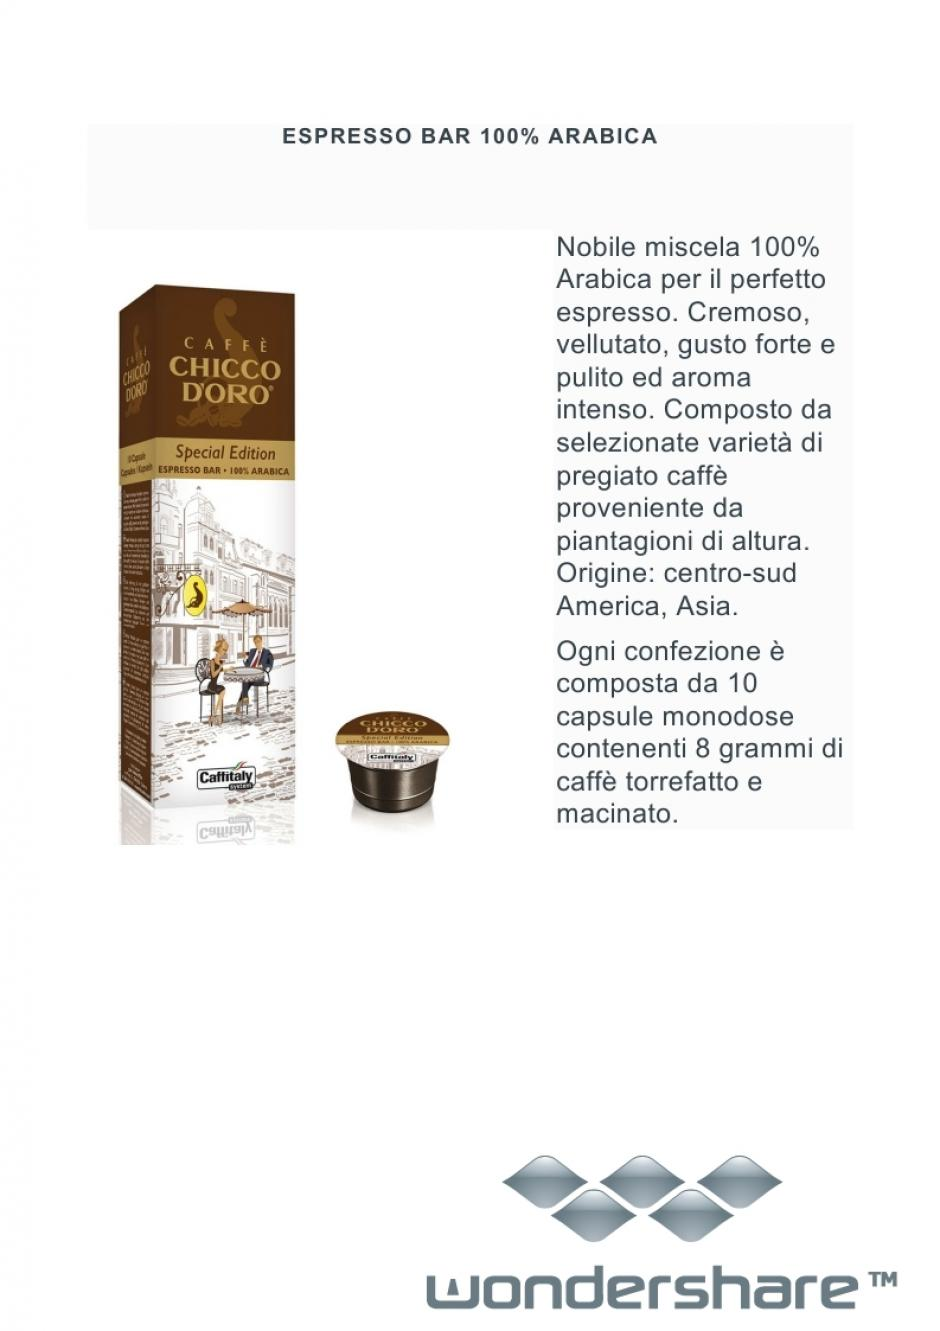 ESPRESSO BAR 100% ARABICA SPECIAL EDITION